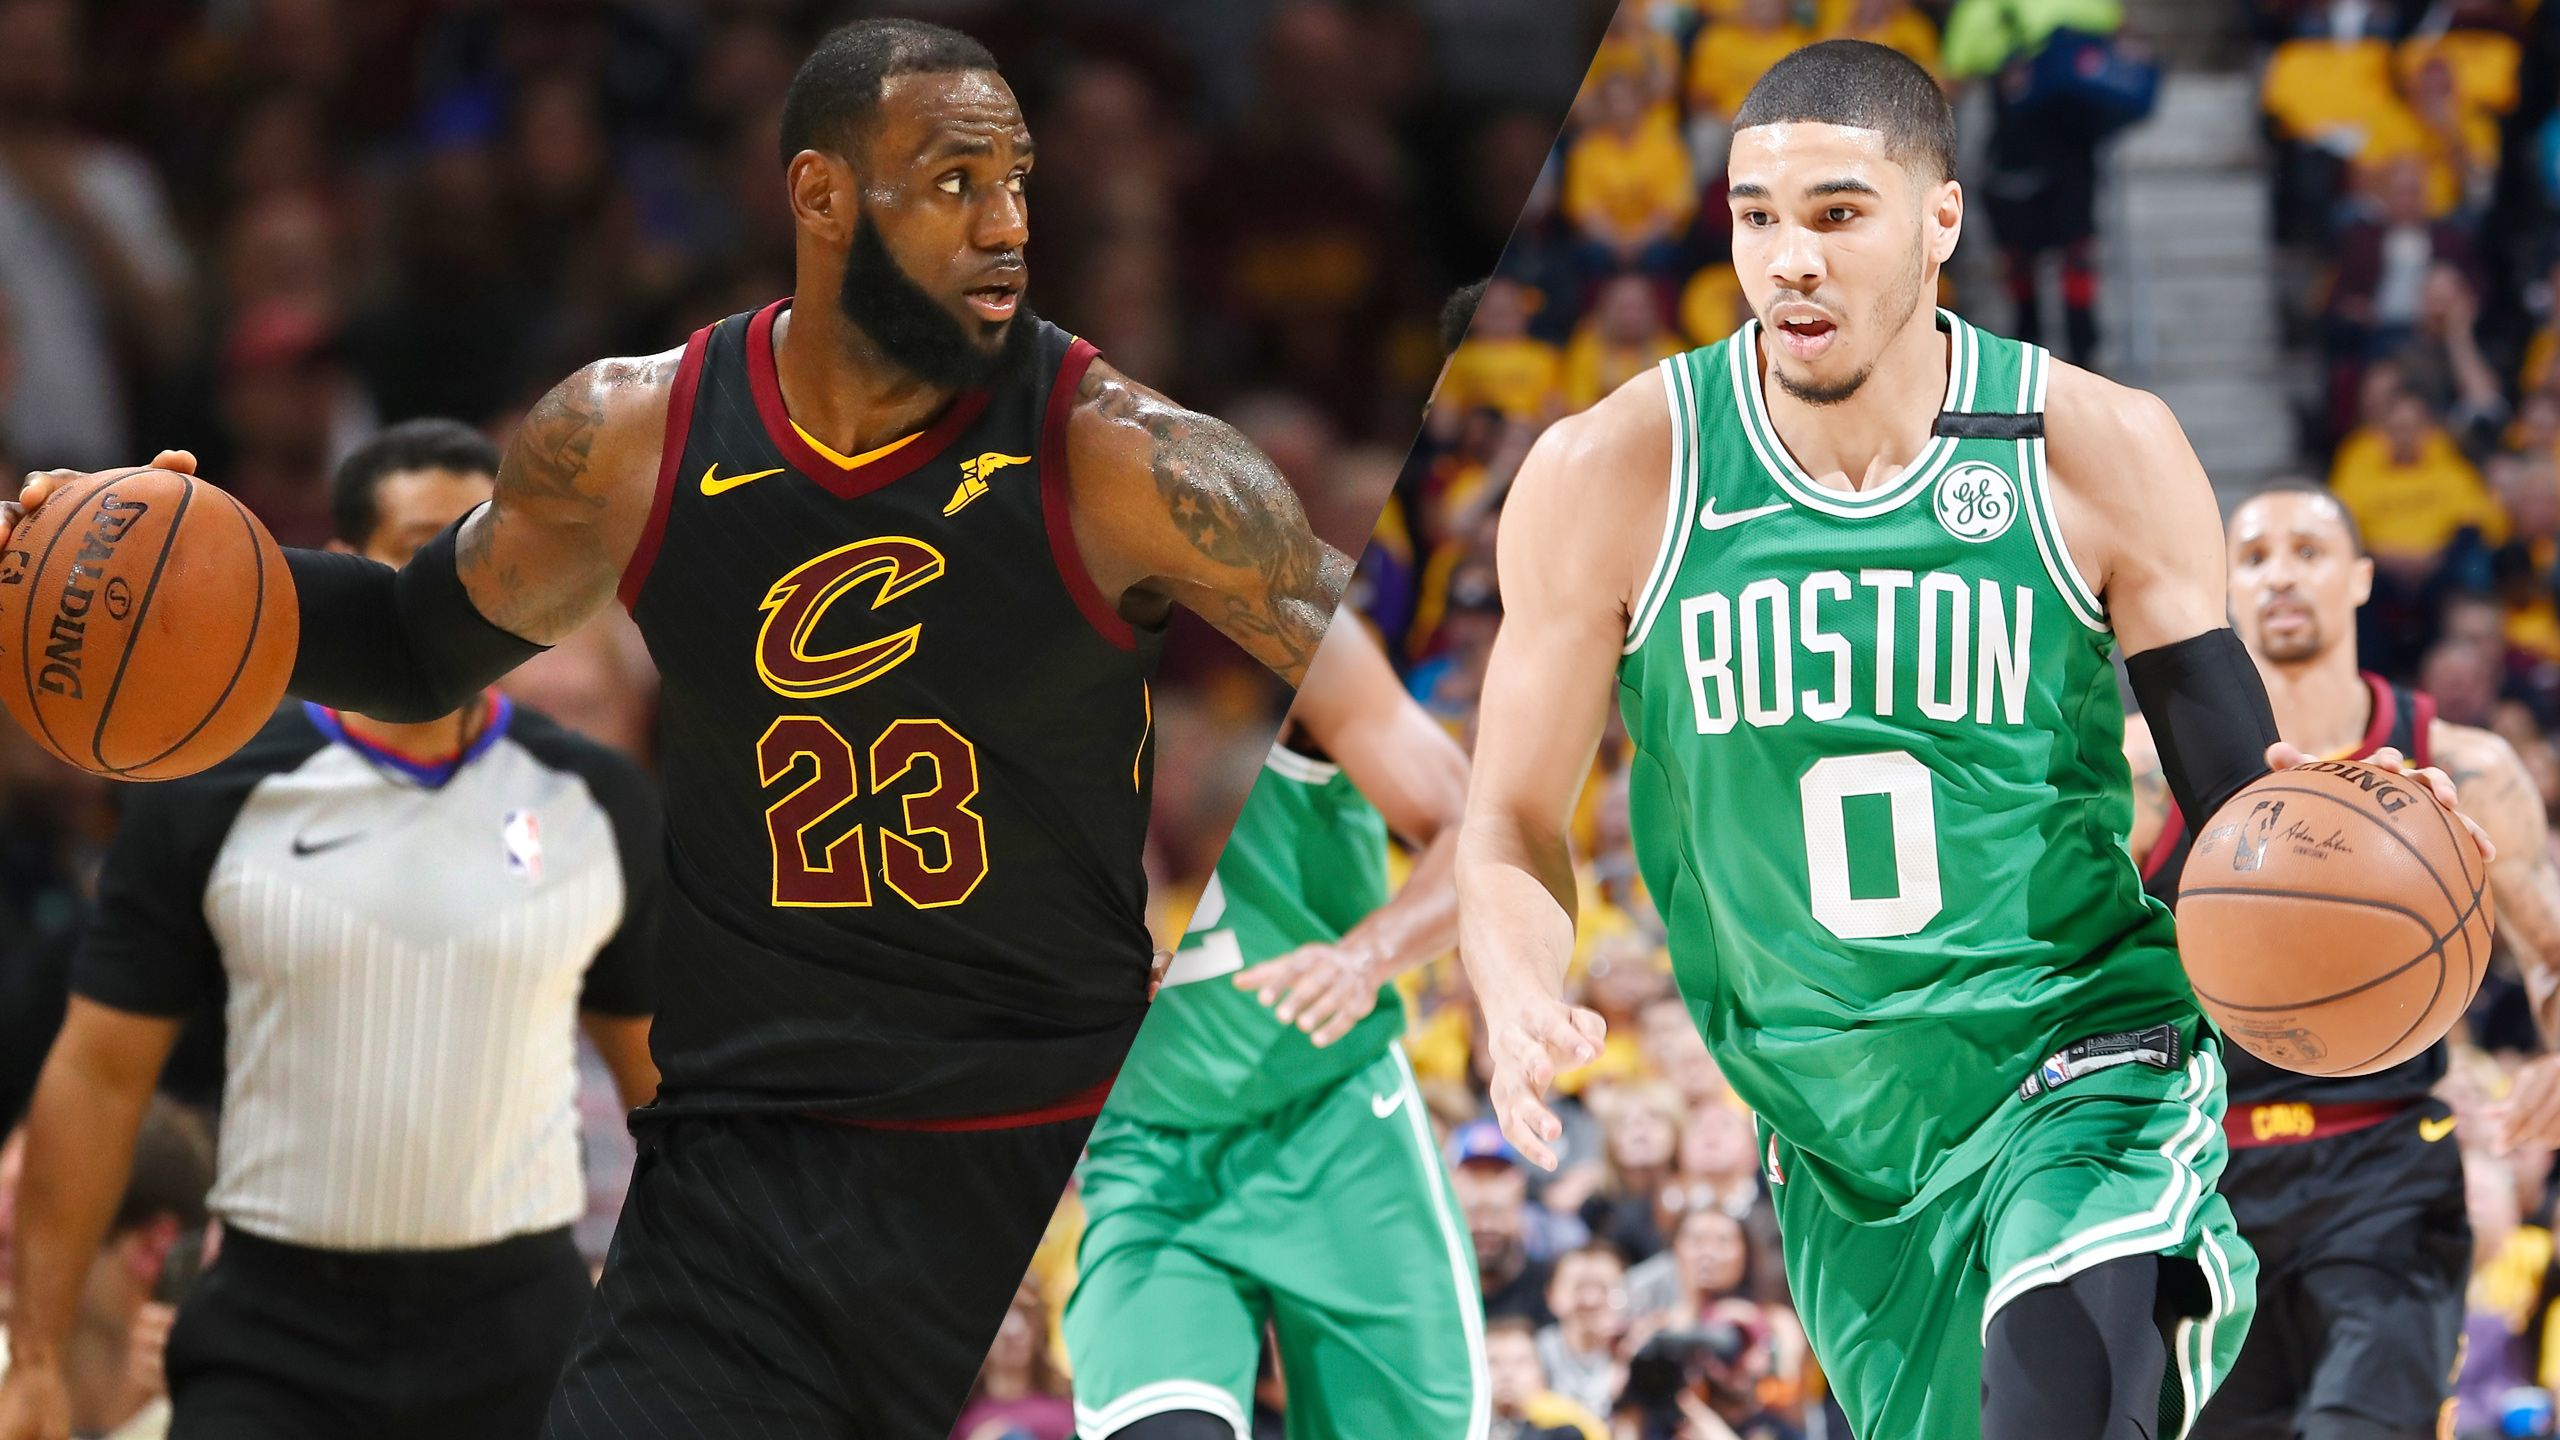 Cleveland Cavaliers vs. Boston Celtics (Conference Finals, Game 5)